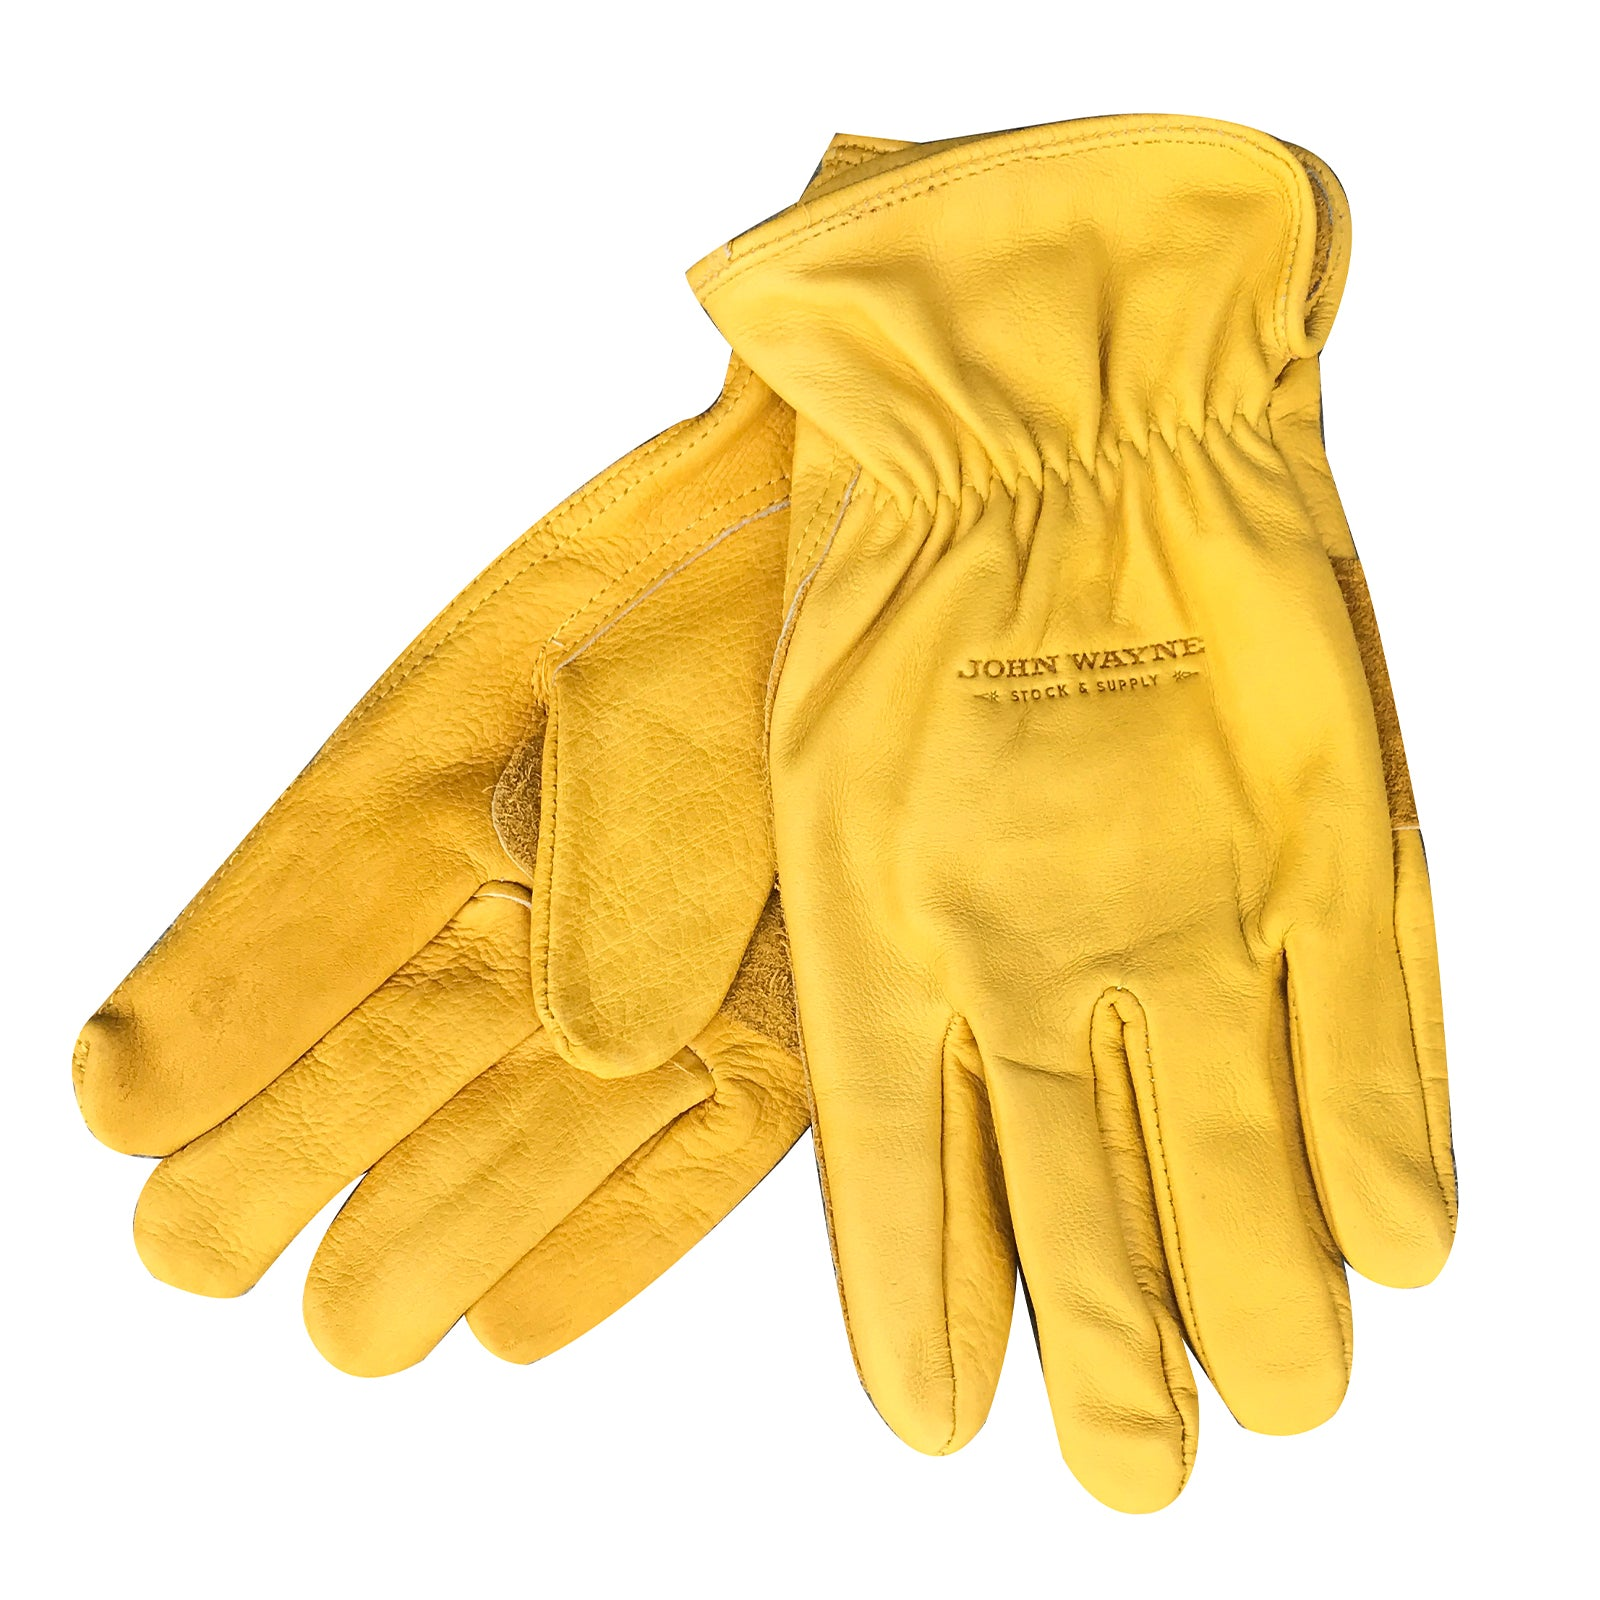 John Wayne Leather Work Gloves